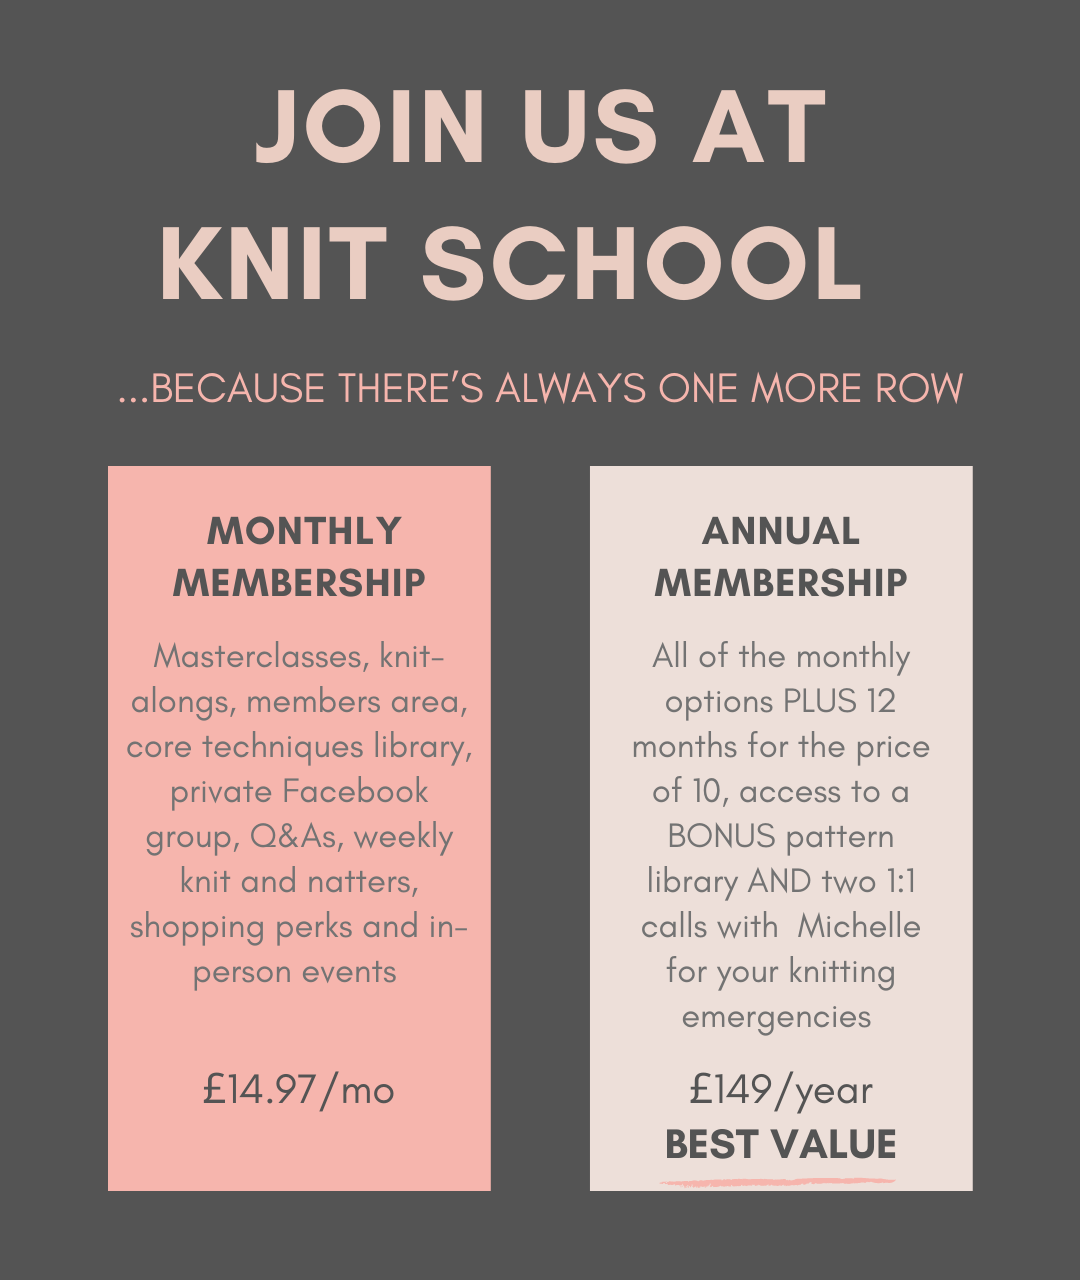 JOIN US At  KNIT SCHOOL. ...BECAUSE THERE'S ALWAYS ONE MORE ROW.  MONTHLY MEMBERSHIP.  Masterclasses, knit-alongs, members area, core techniques library, private Facebook group, Q&As, weekly knit and natters, shopping perks and in-person events. £14.97 per month. ANNUAL MEMBERSHIP, BEST VALUE, All of the monthly options PLUS 12 months for the price of 10, access to a BONUS pattern library AND two 1:1 calls with  Michelle for your knitting emergencies. £149 per year.